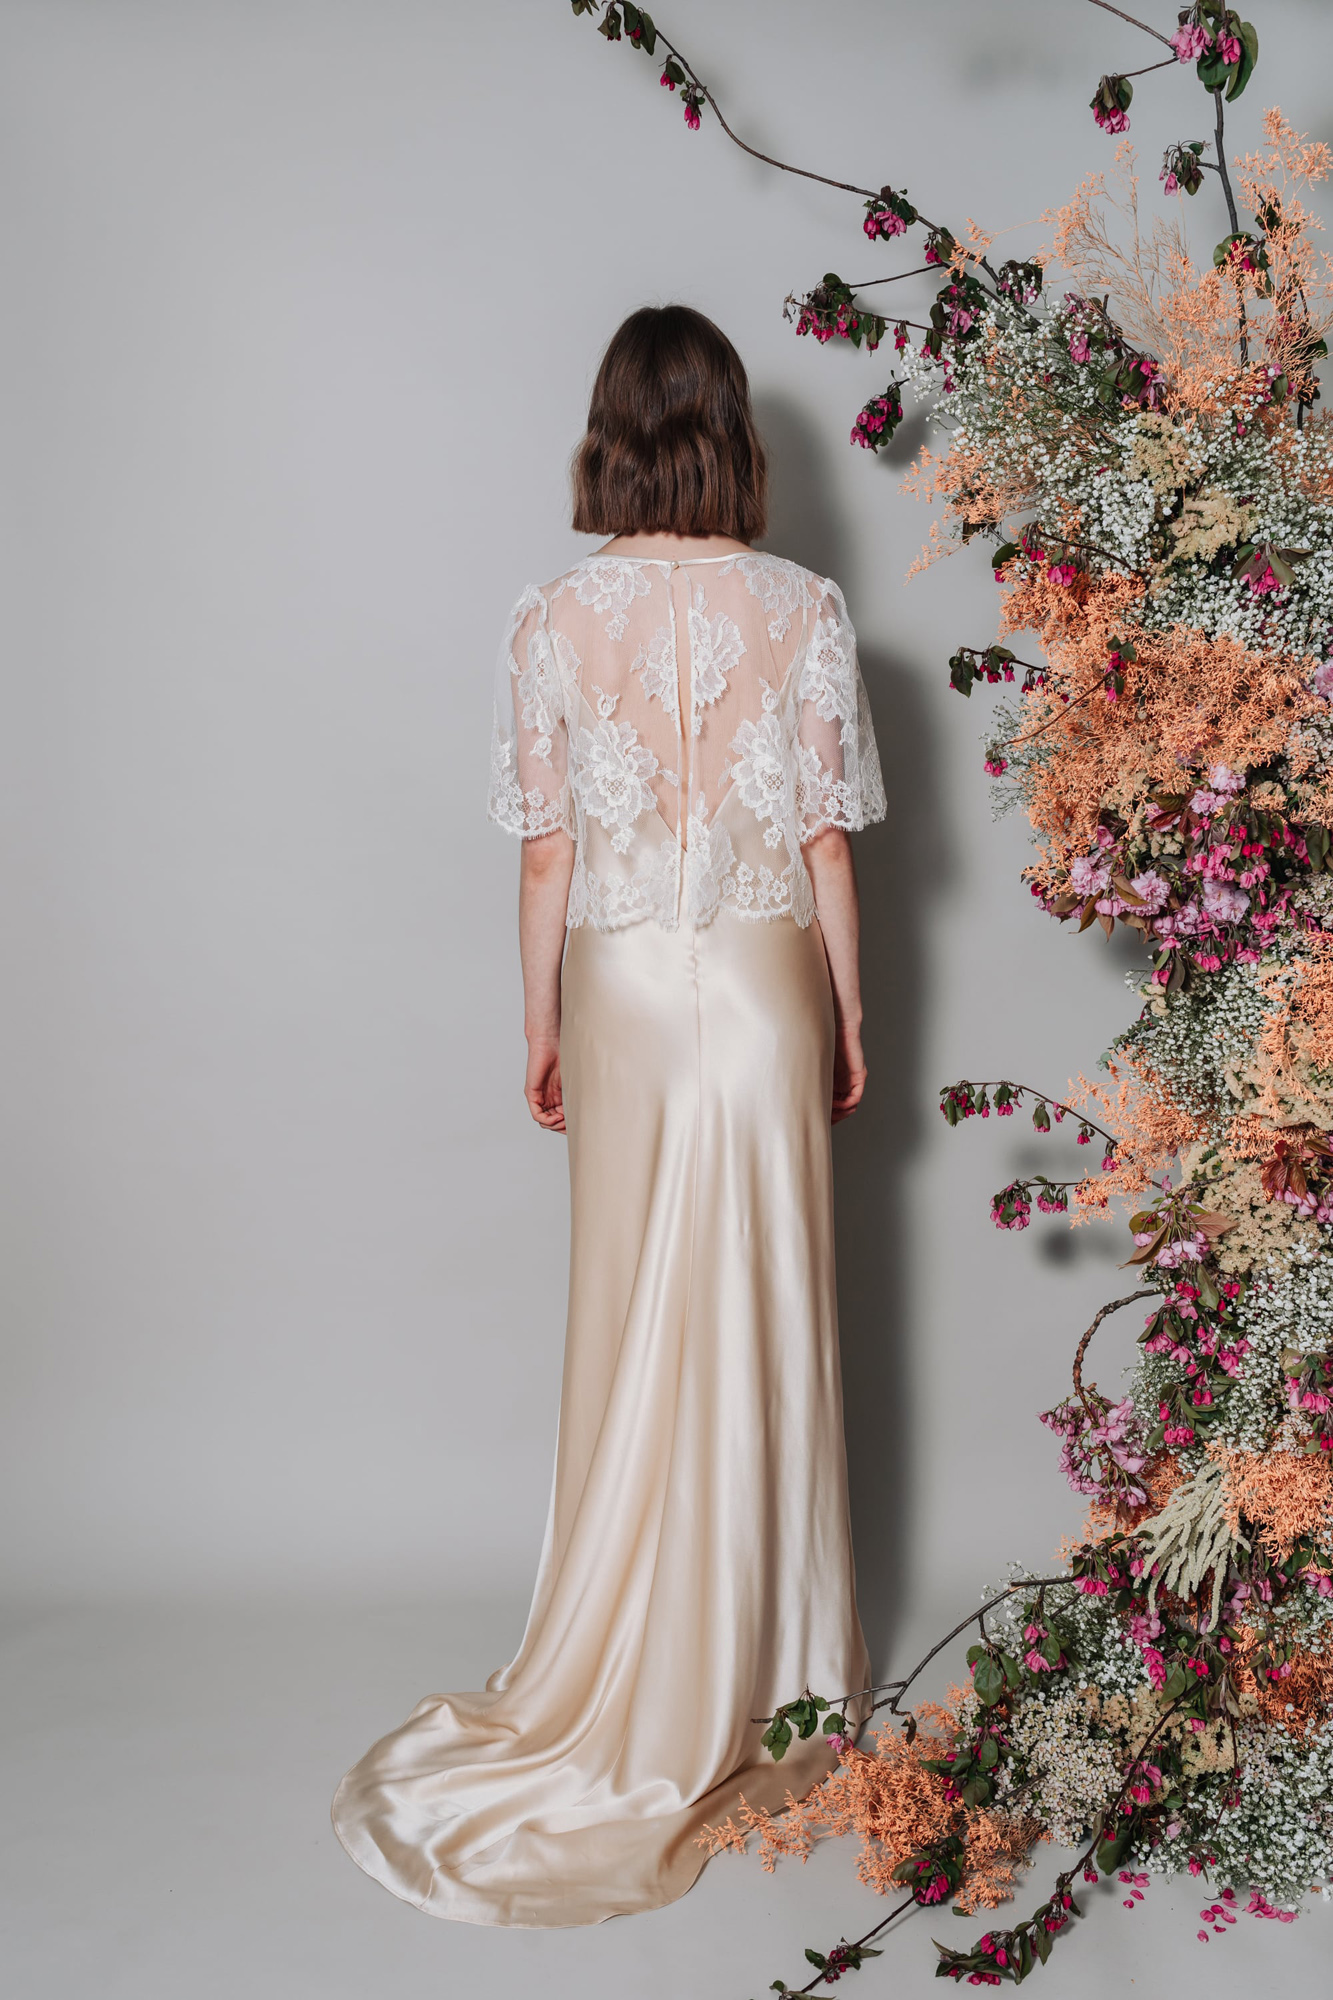 Kate-Beaumont-Sheffield-Rosa-Floral-Lace-Jacket-Thistle-Bias-Cut-Pearl-Silk-Wedding-Gown-9.jpg